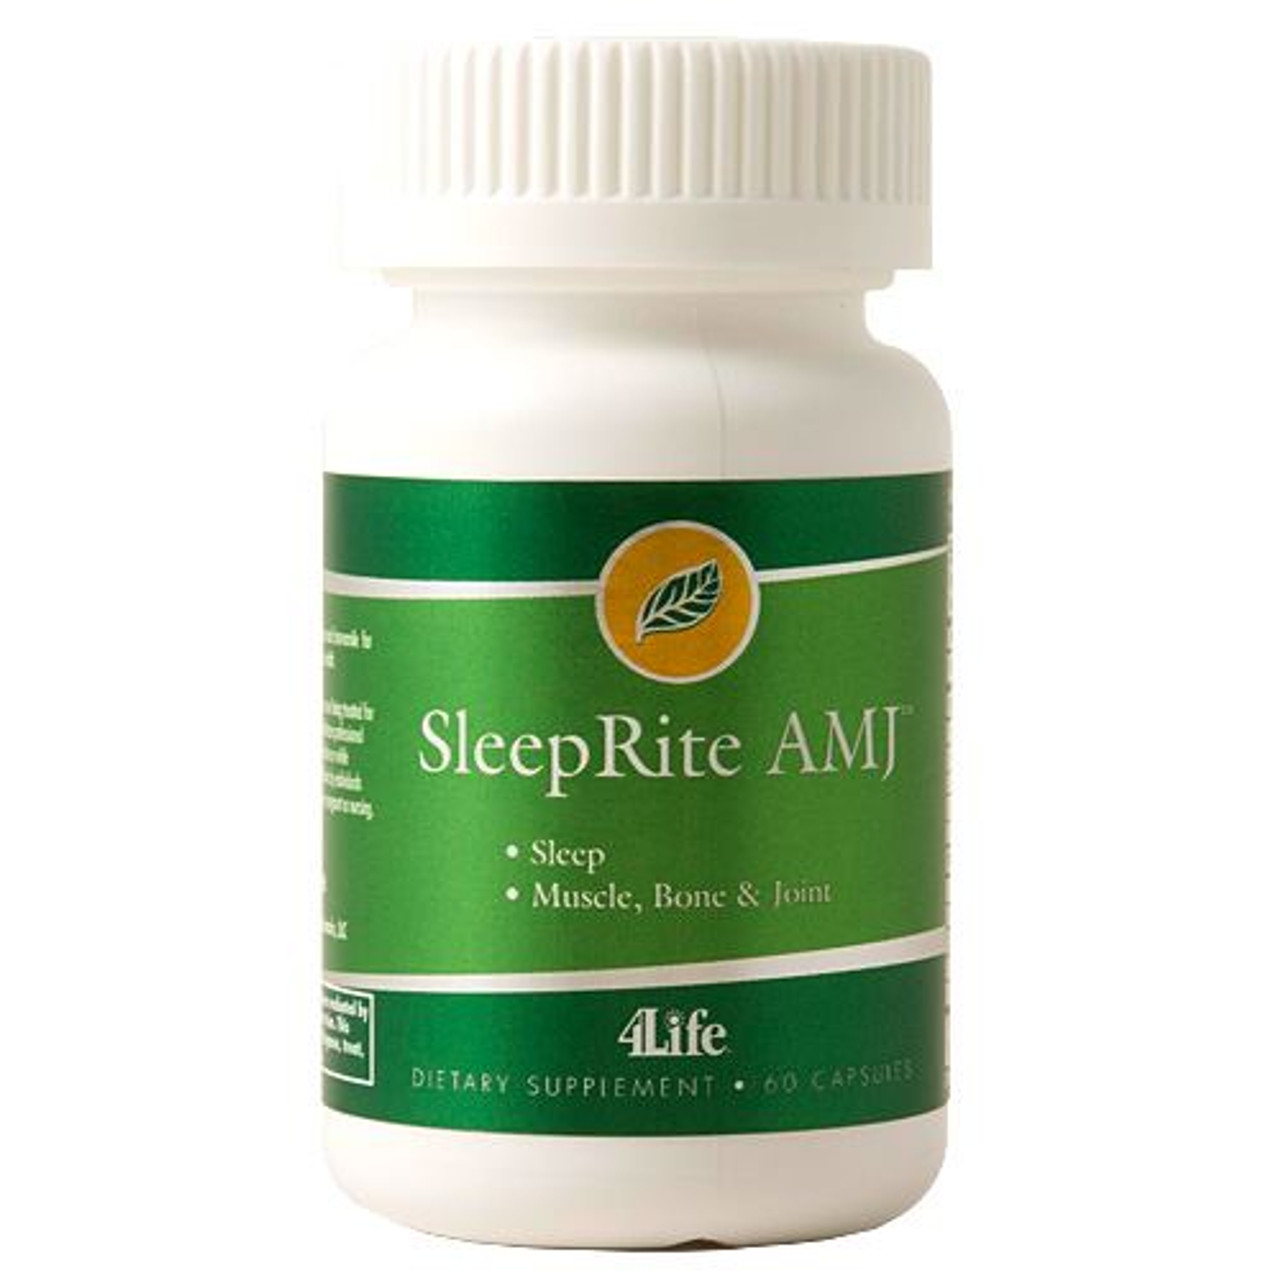 SleepRite AMJ by 4Life